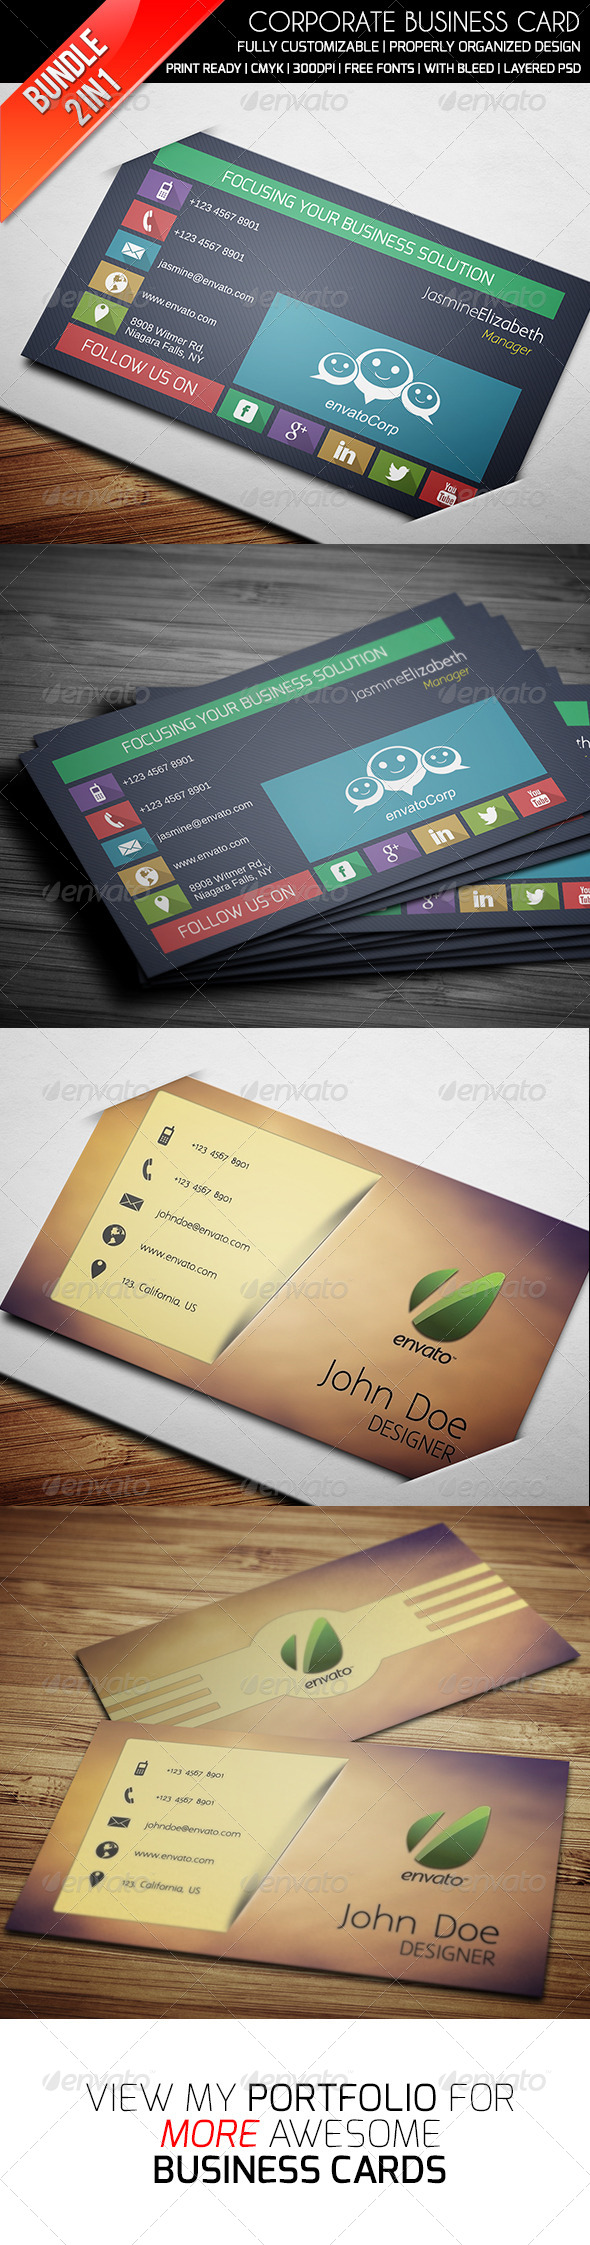 GraphicRiver Ethanfx Business Card Bundle Vol 5 8426992